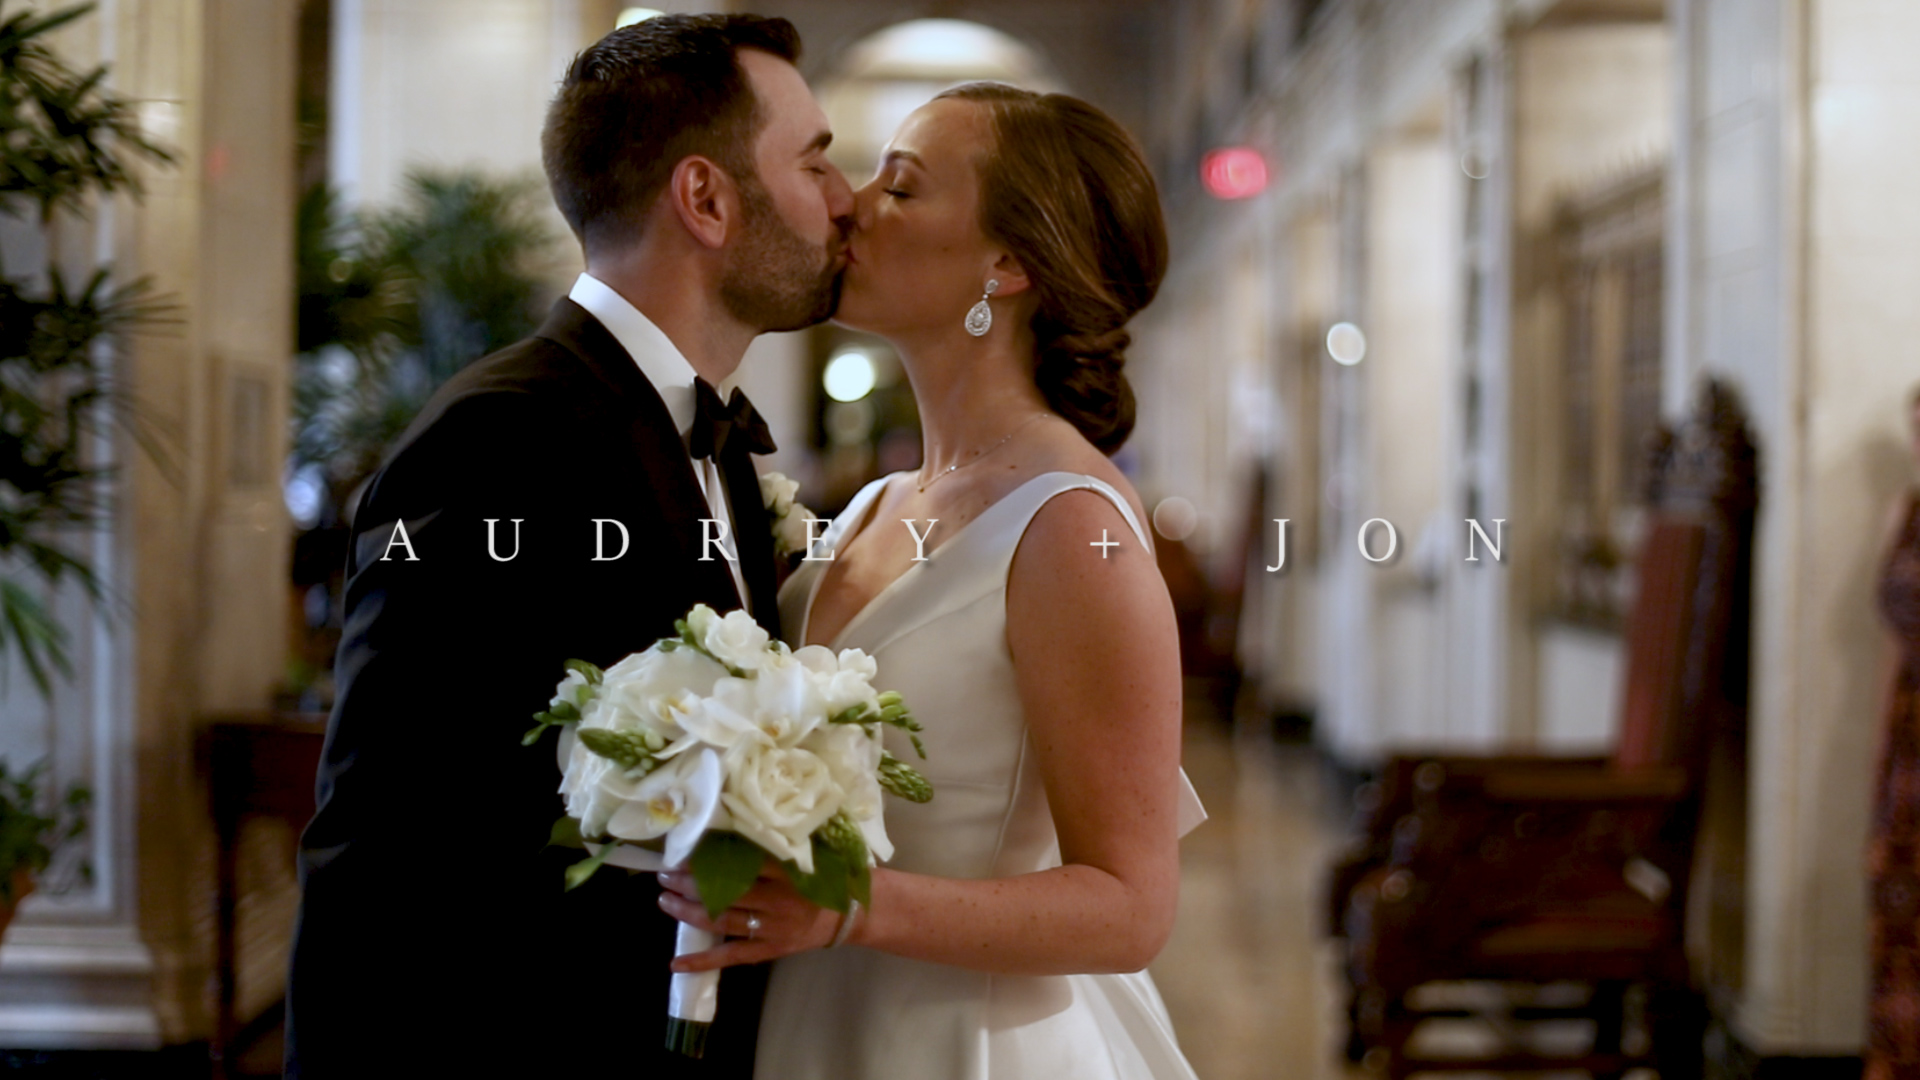 Jon + Audrey | Louisville, Kentucky | The Brown Hotel